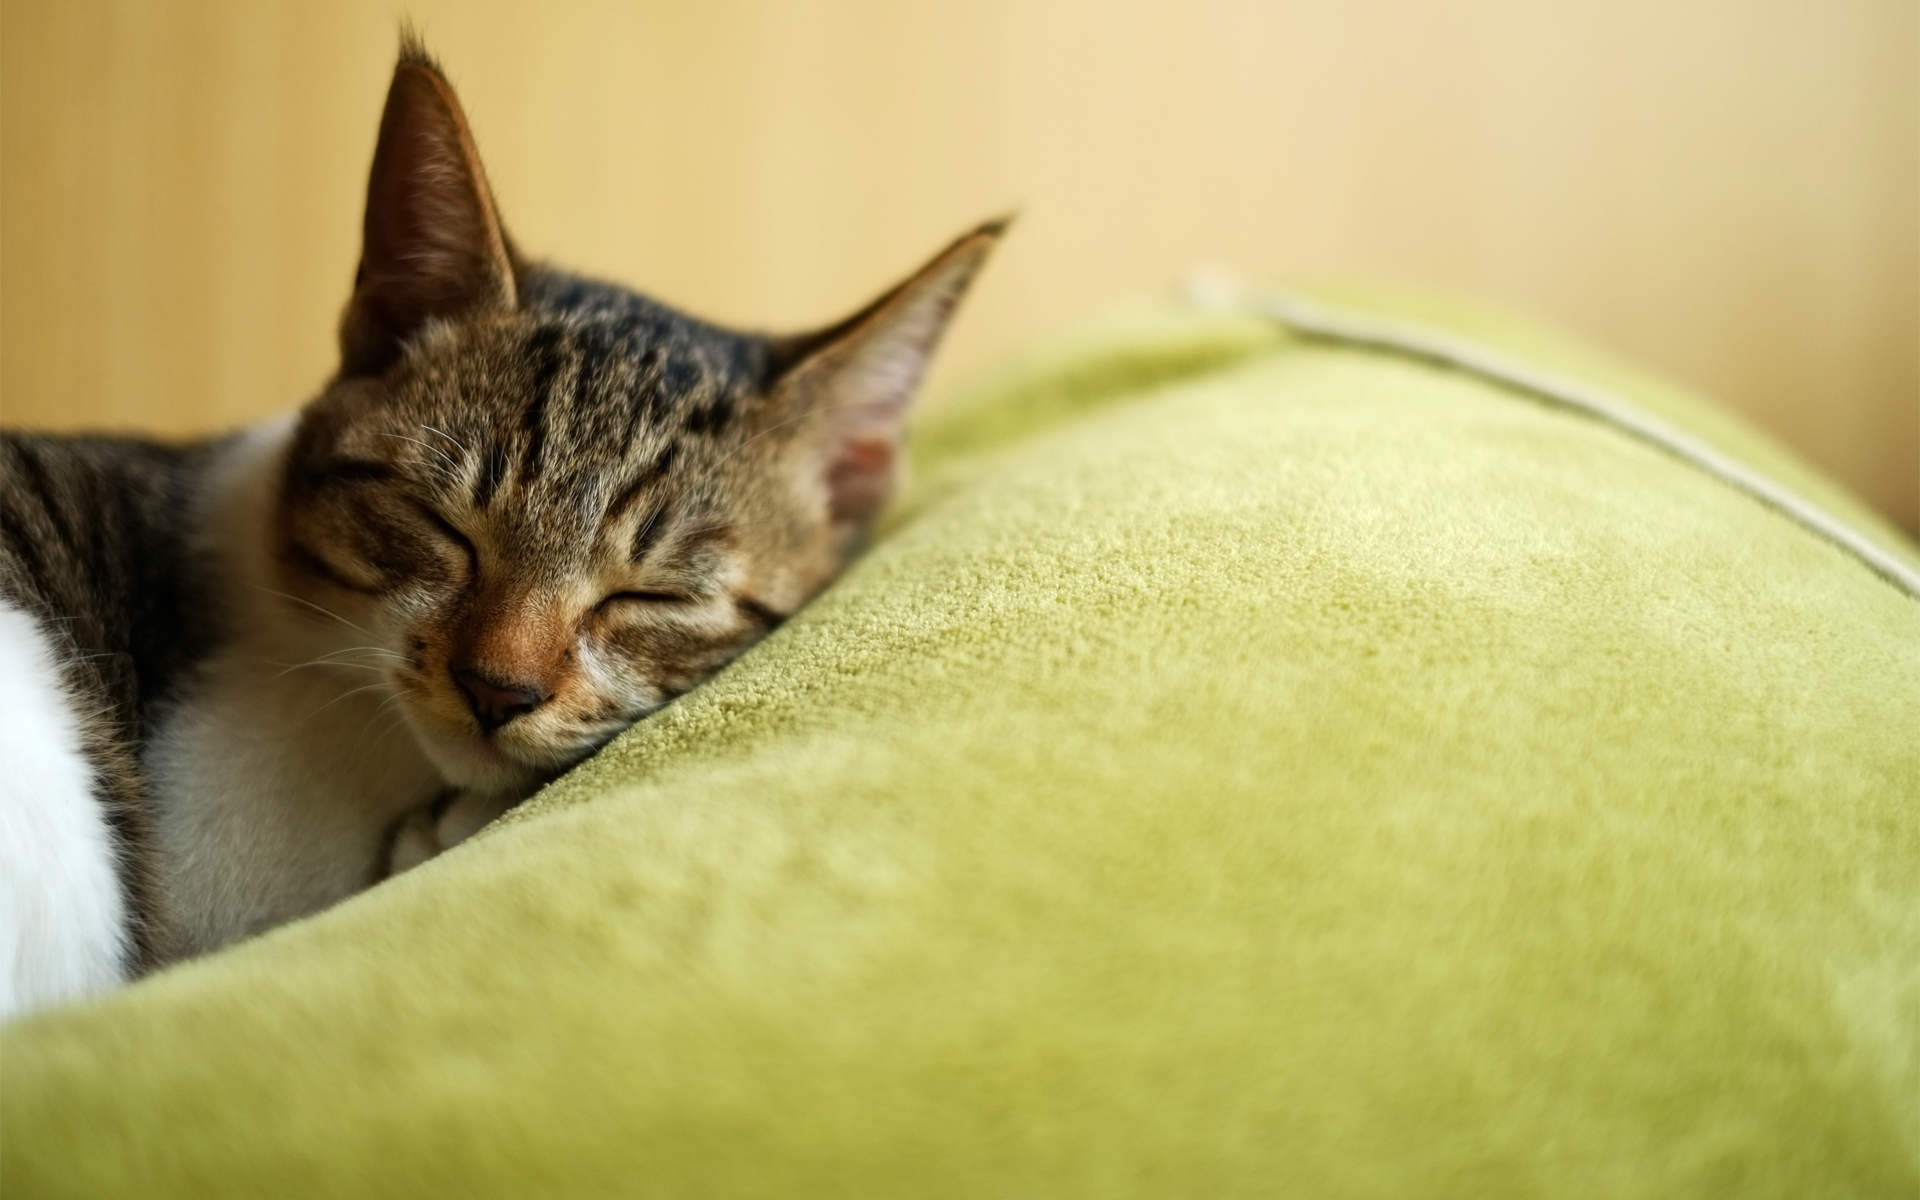 original wallpaper download: A beautiful tabby cat asleep - 1920x1200